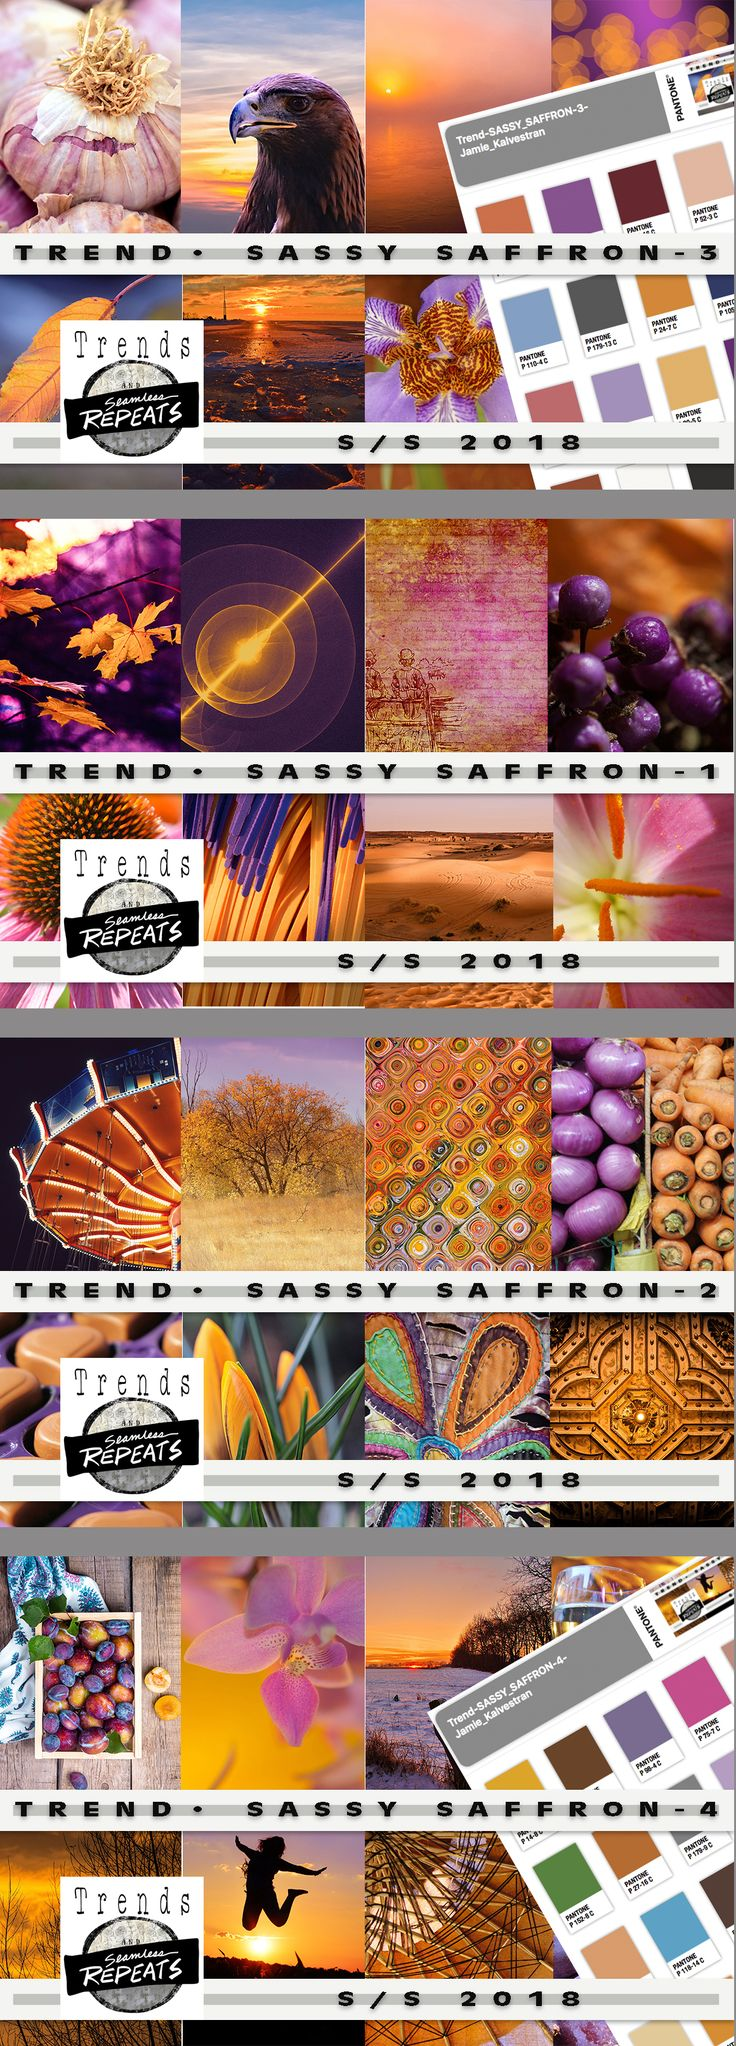 TREND - Sassy Saffron Everything you need to create your own trend board, mood board or other presentation or product.      85 - Creative Commons CC0 Images - average size approximately 1200px x 1900px     4 - Pantone Color Palettes (CMYK - Coated)     4 - CMYK (Pantone Color Bridge) .aco files for each color palette